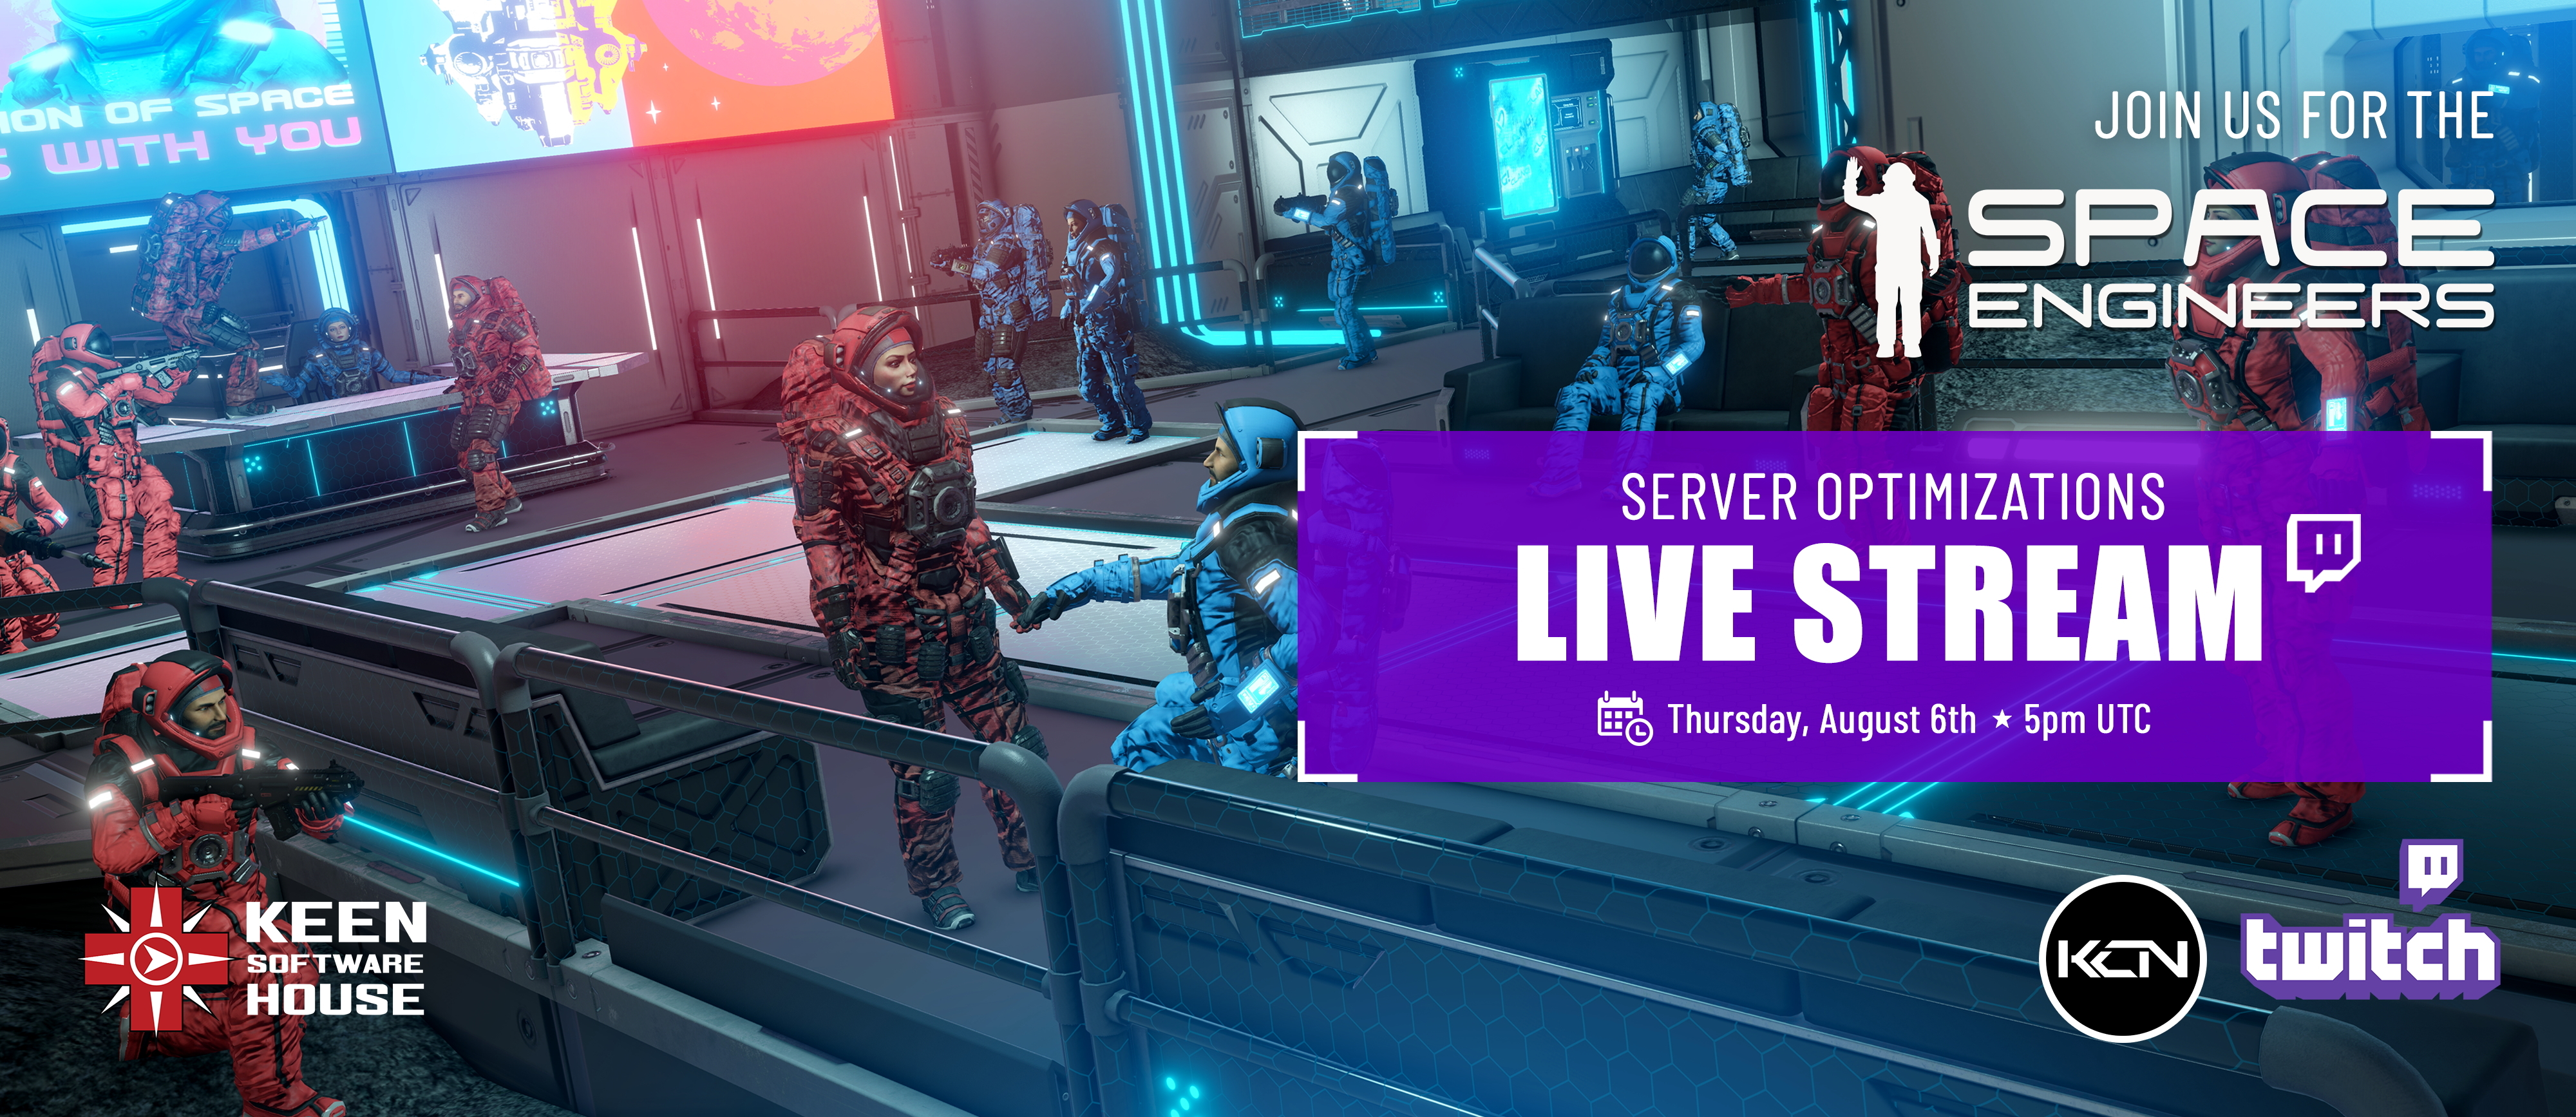 Join us for a very special Space Engineers stream!